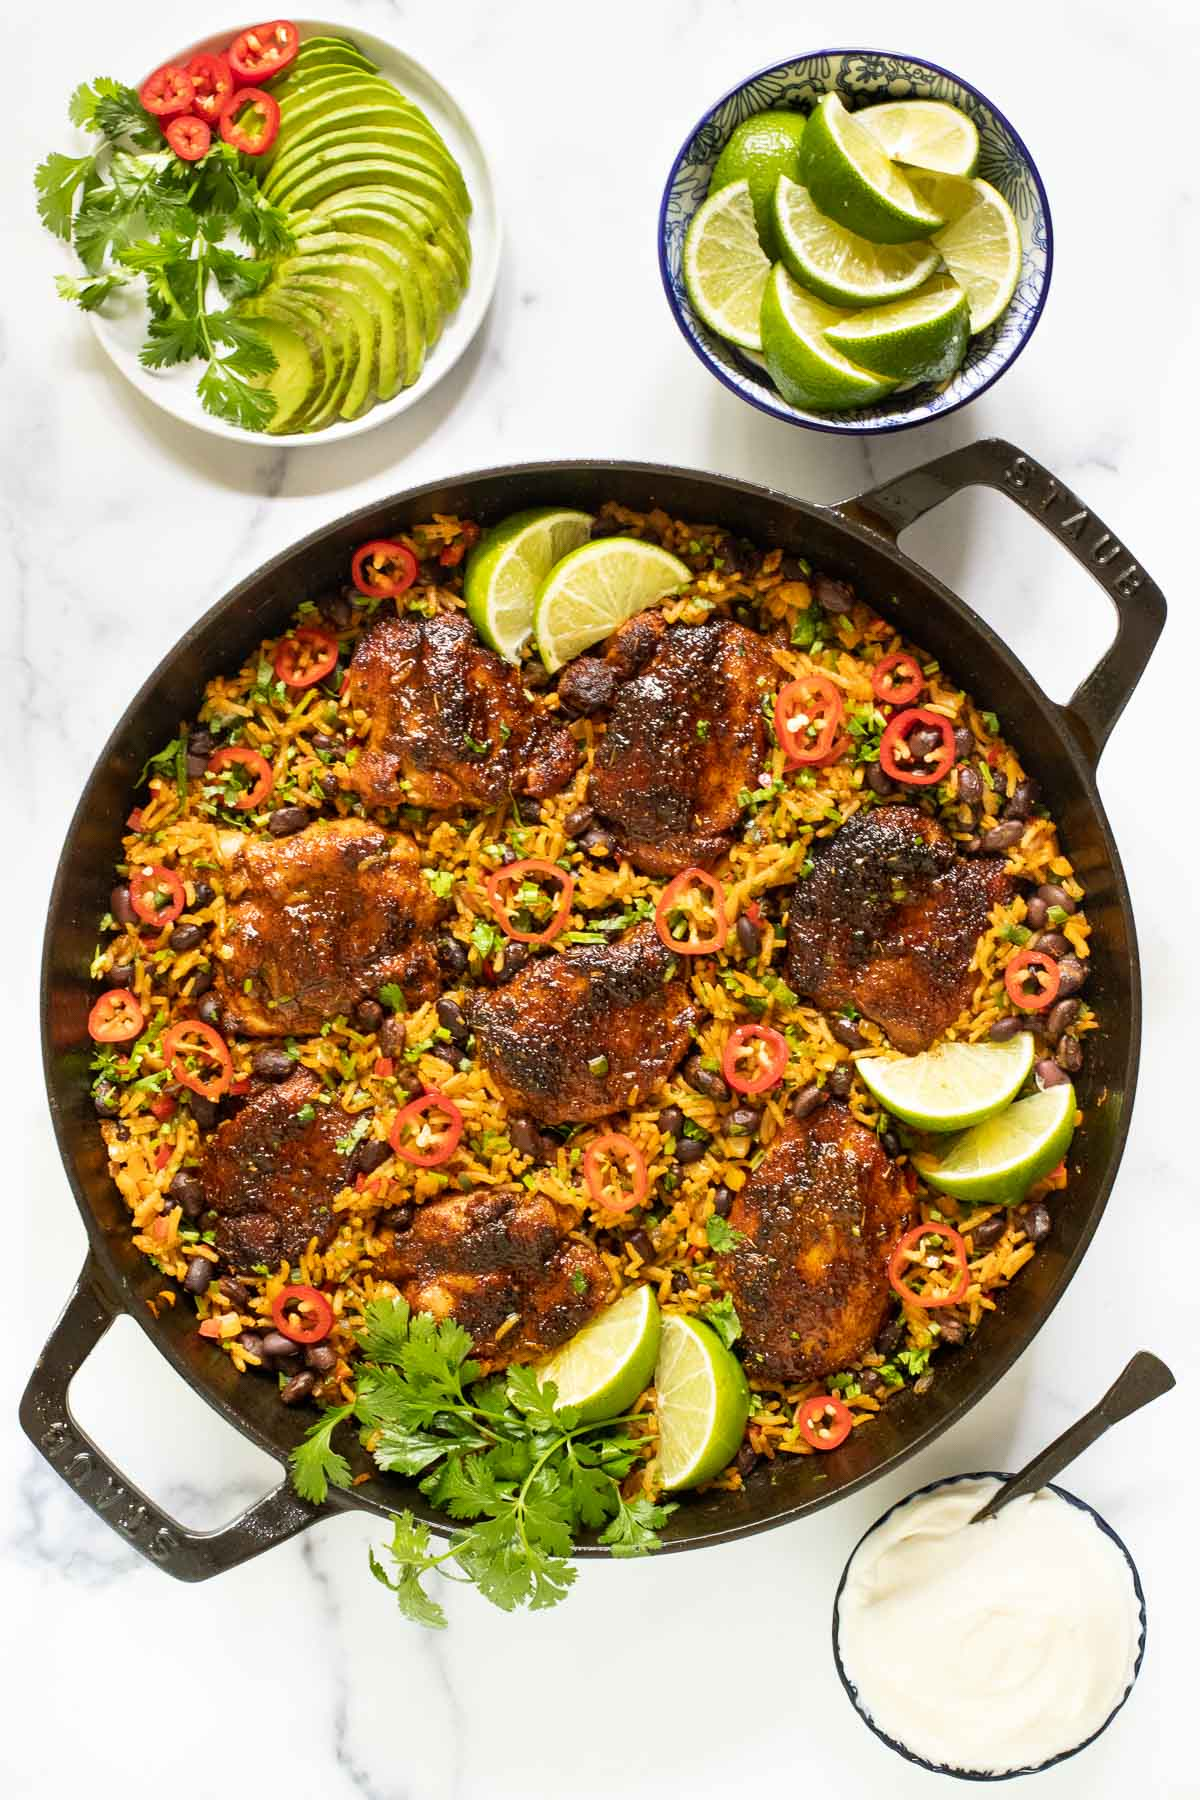 Vertical overhead photo of One-Pot Mexican Chicken and Rice surrounded by garnishes including sliced avocados, peppers, cilantro, lime wedges and sour cream.